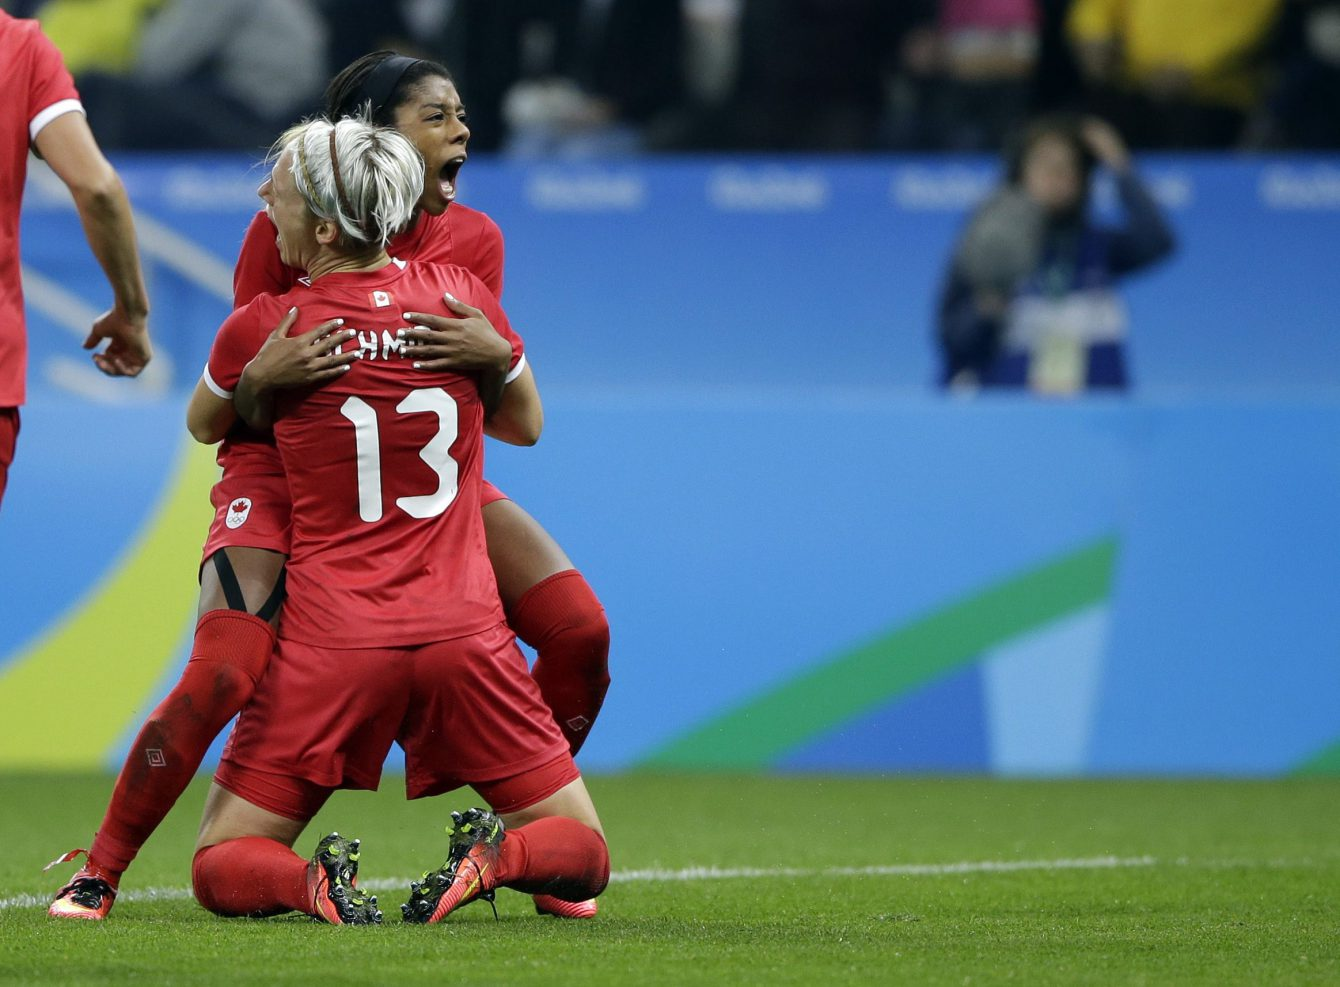 Canada's Sophie Schmidt,, 13, celebrates with teammate Canada's Ashley Lawrence celebrates after scoring her team's first goal during a quarter-final match of the women's Olympic football tournament between Canada and France in Sao Paulo, Brazil, Friday Aug. 12, 2016.(AP Photo/Nelson Antoine)